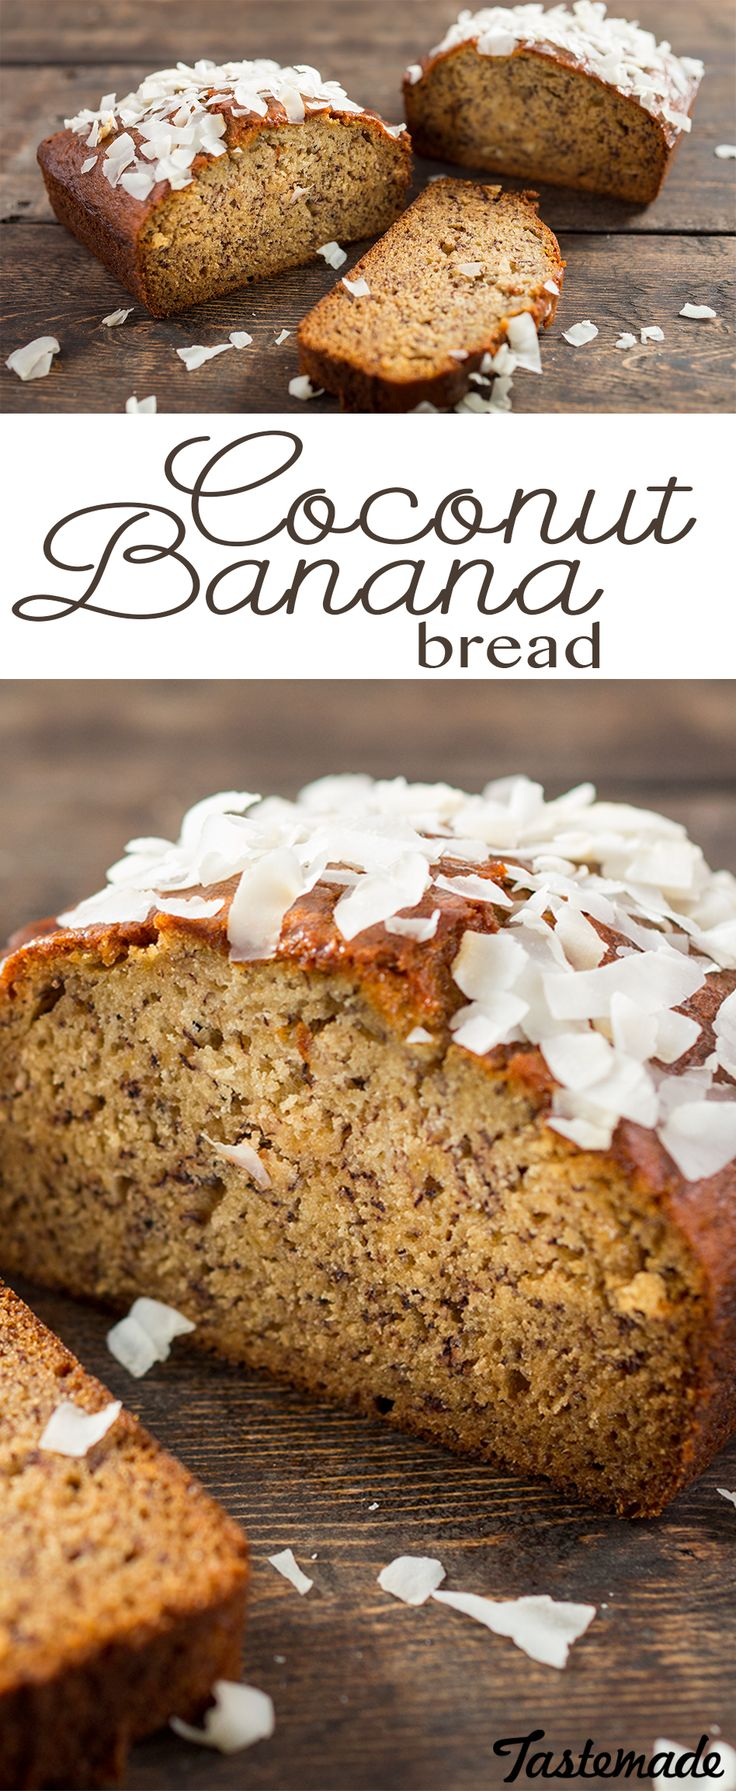 Put your overripe bananas to tasty use by baking them into this tropical bread.